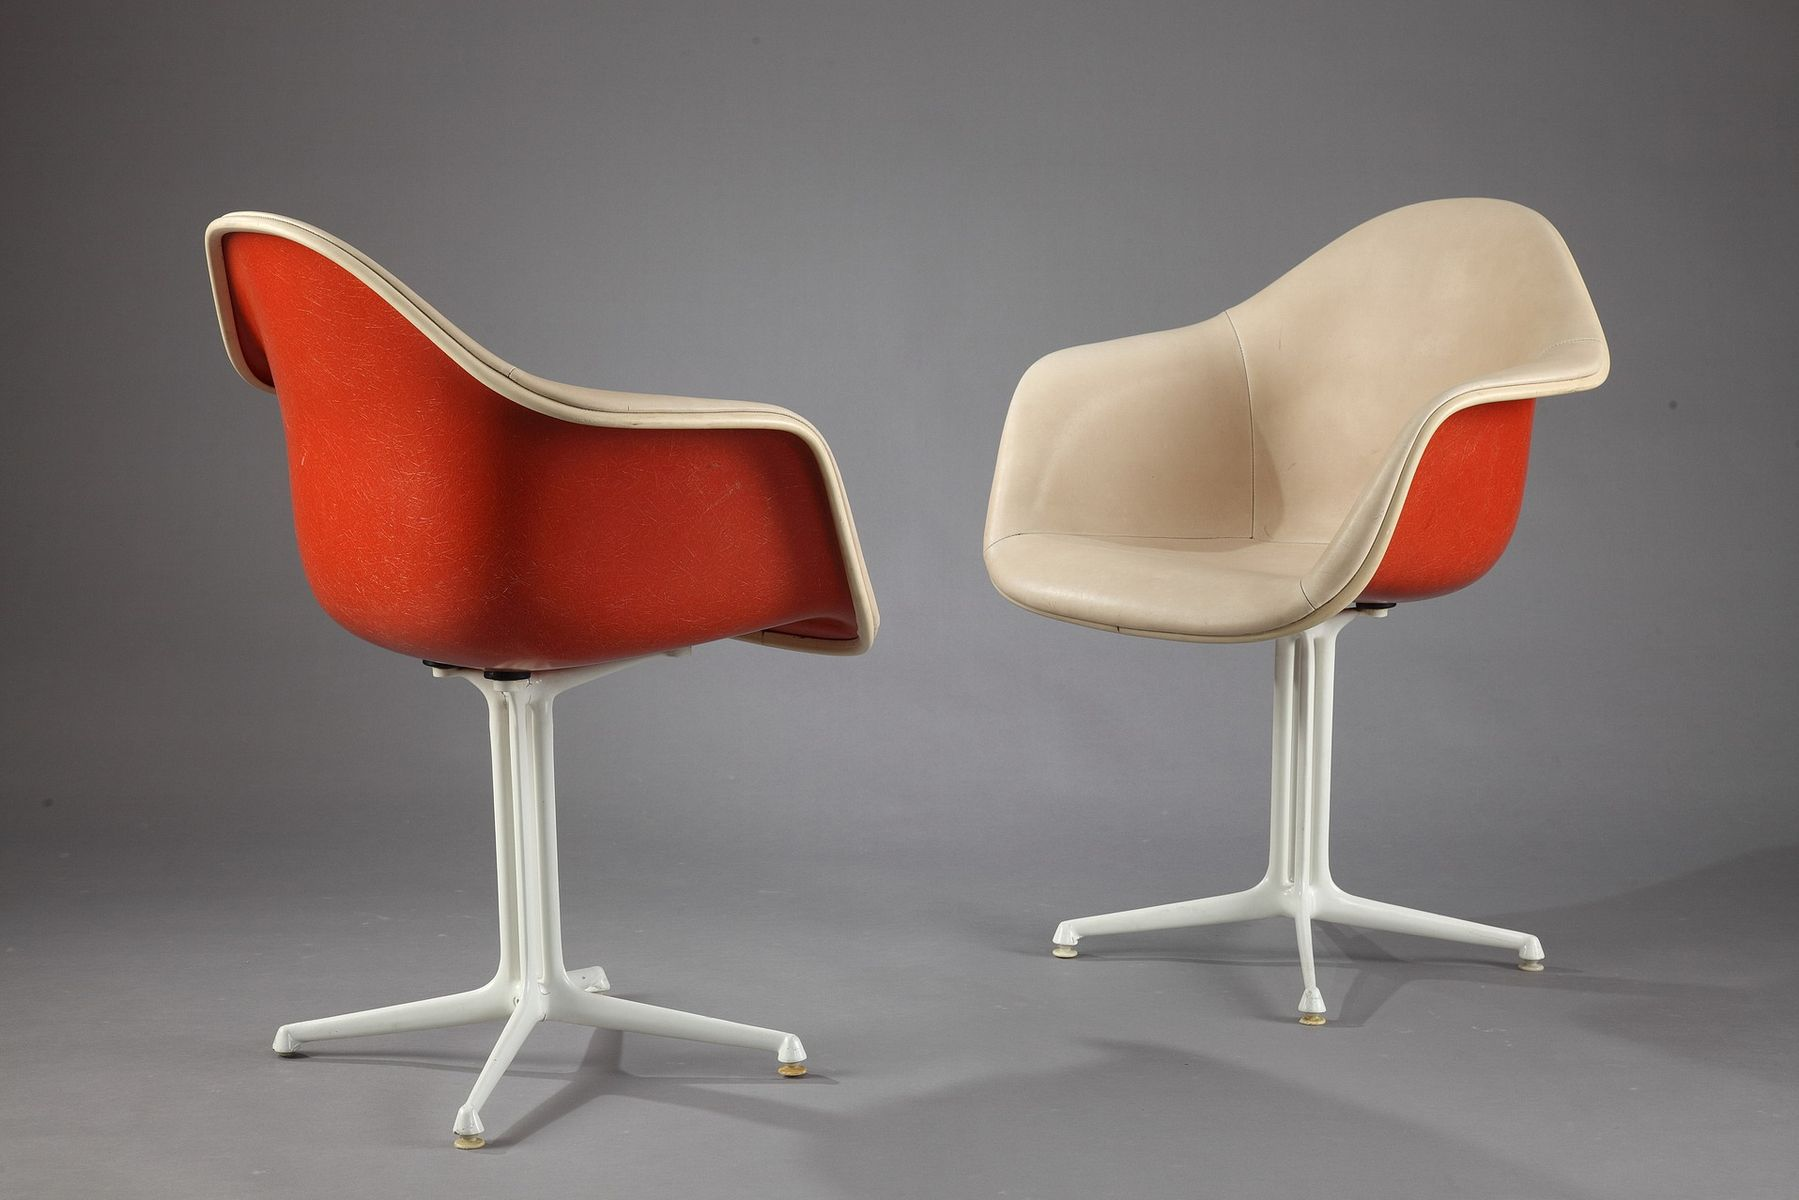 orange and beige la fonda chairs by charles and ray eames. Black Bedroom Furniture Sets. Home Design Ideas